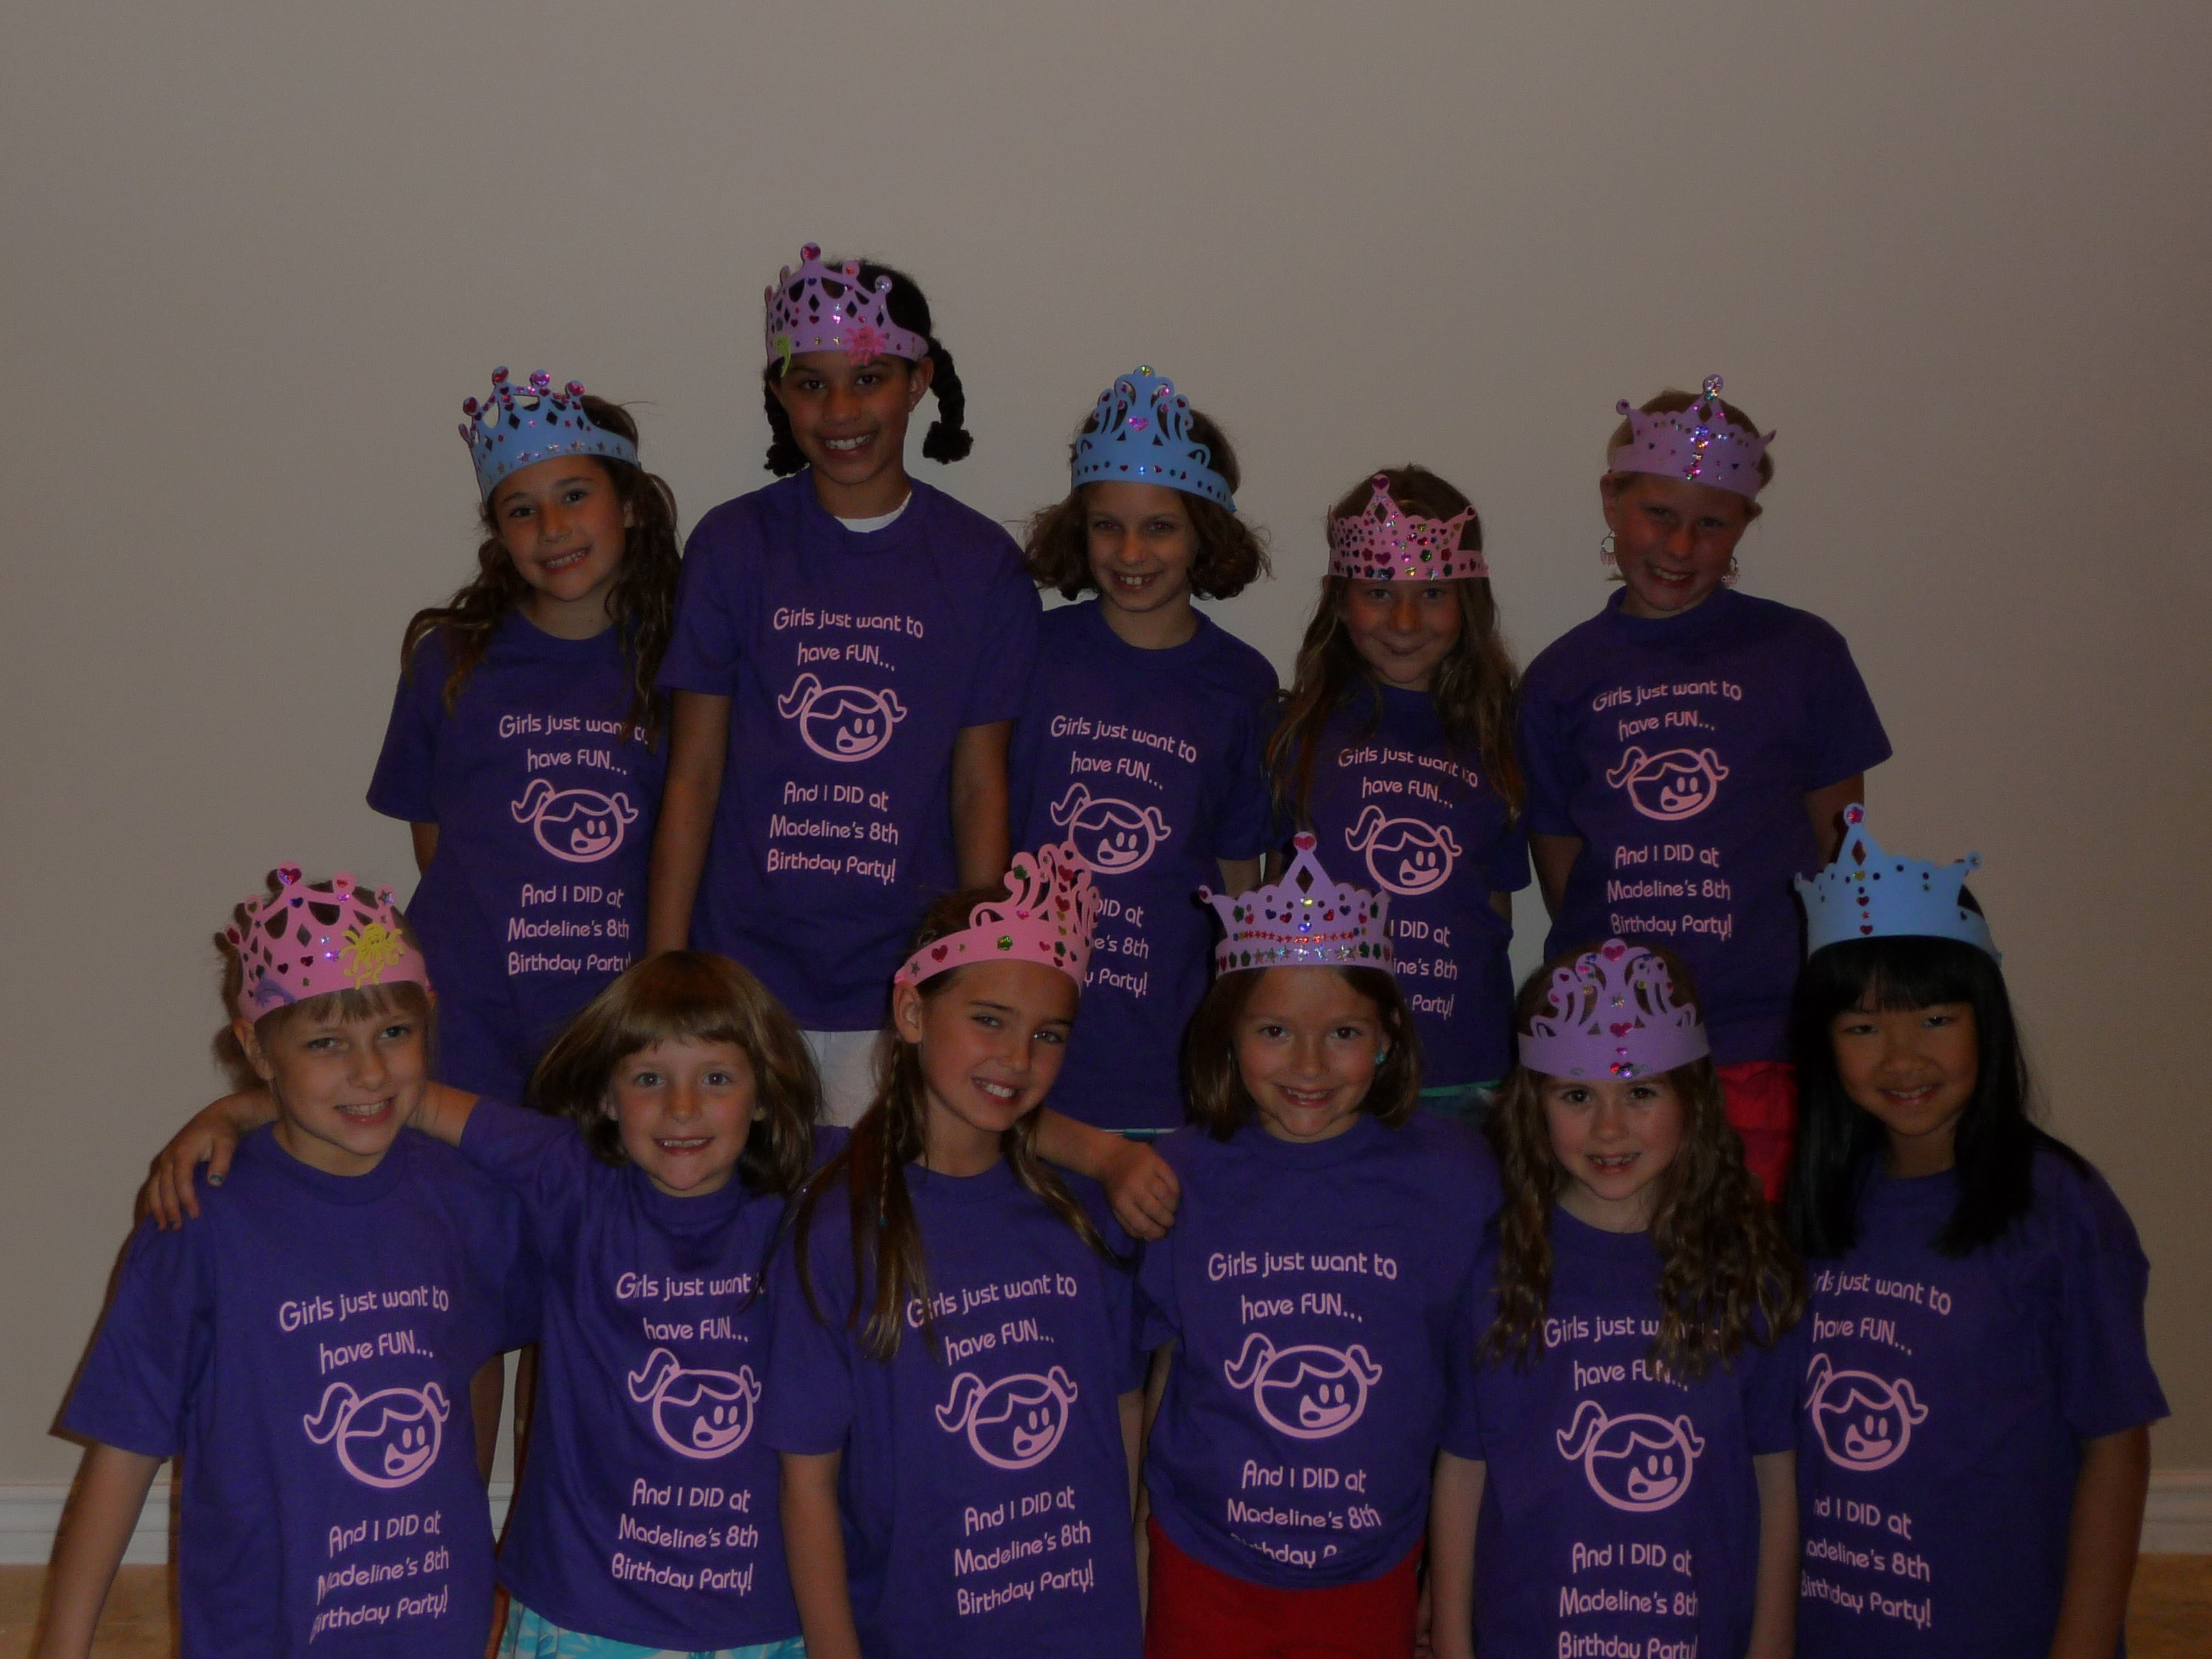 Design your own t-shirt birthday party - Madeline S 8th Birthday Party T Shirt Photo